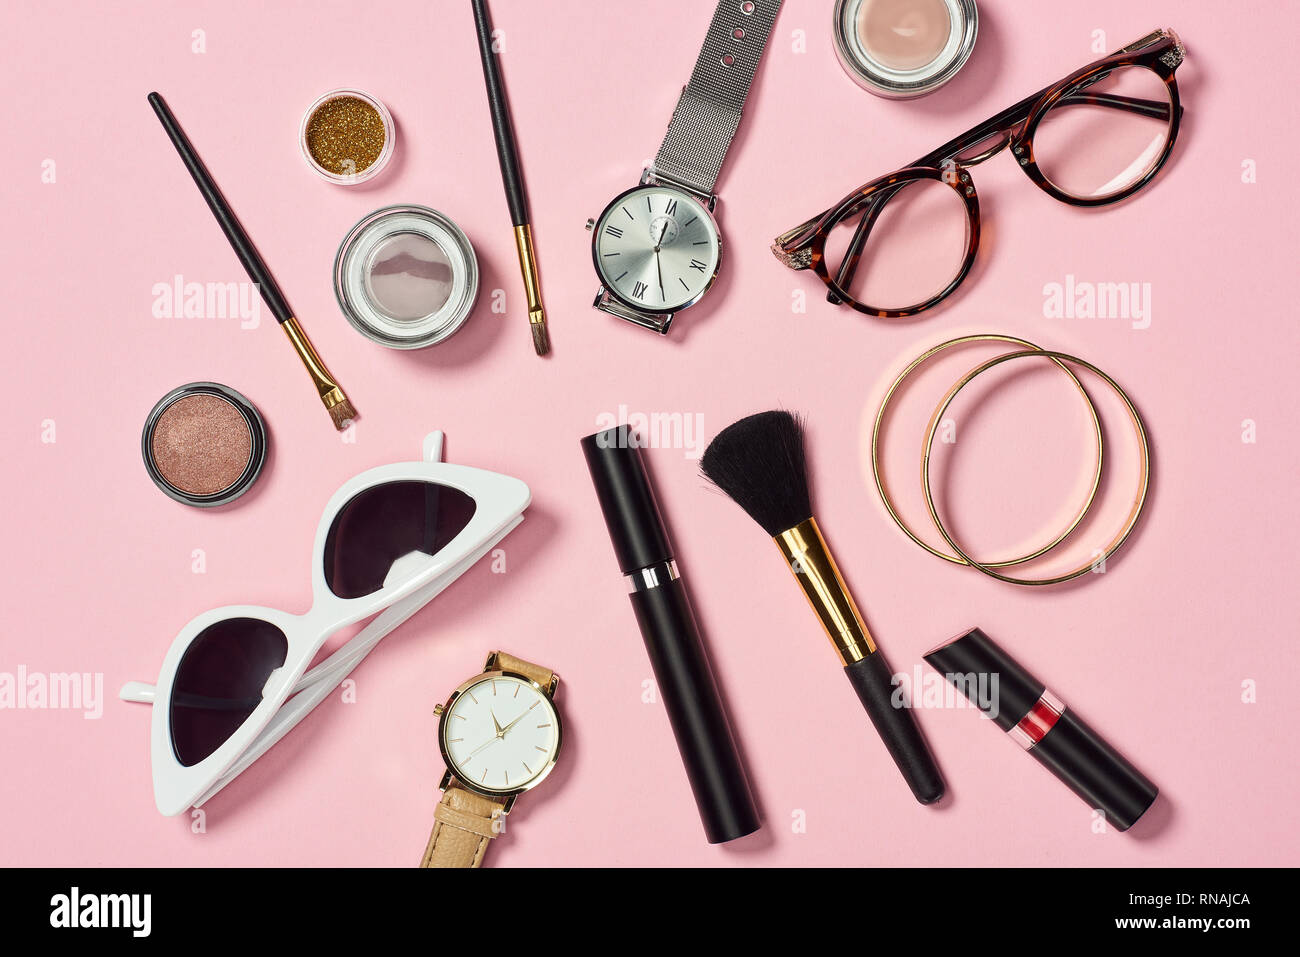 Top view of watches, lipstick, glasses, sunglasses, eyeshadow, blush, cosmetic brushes, bracelets and mascara Stock Photo